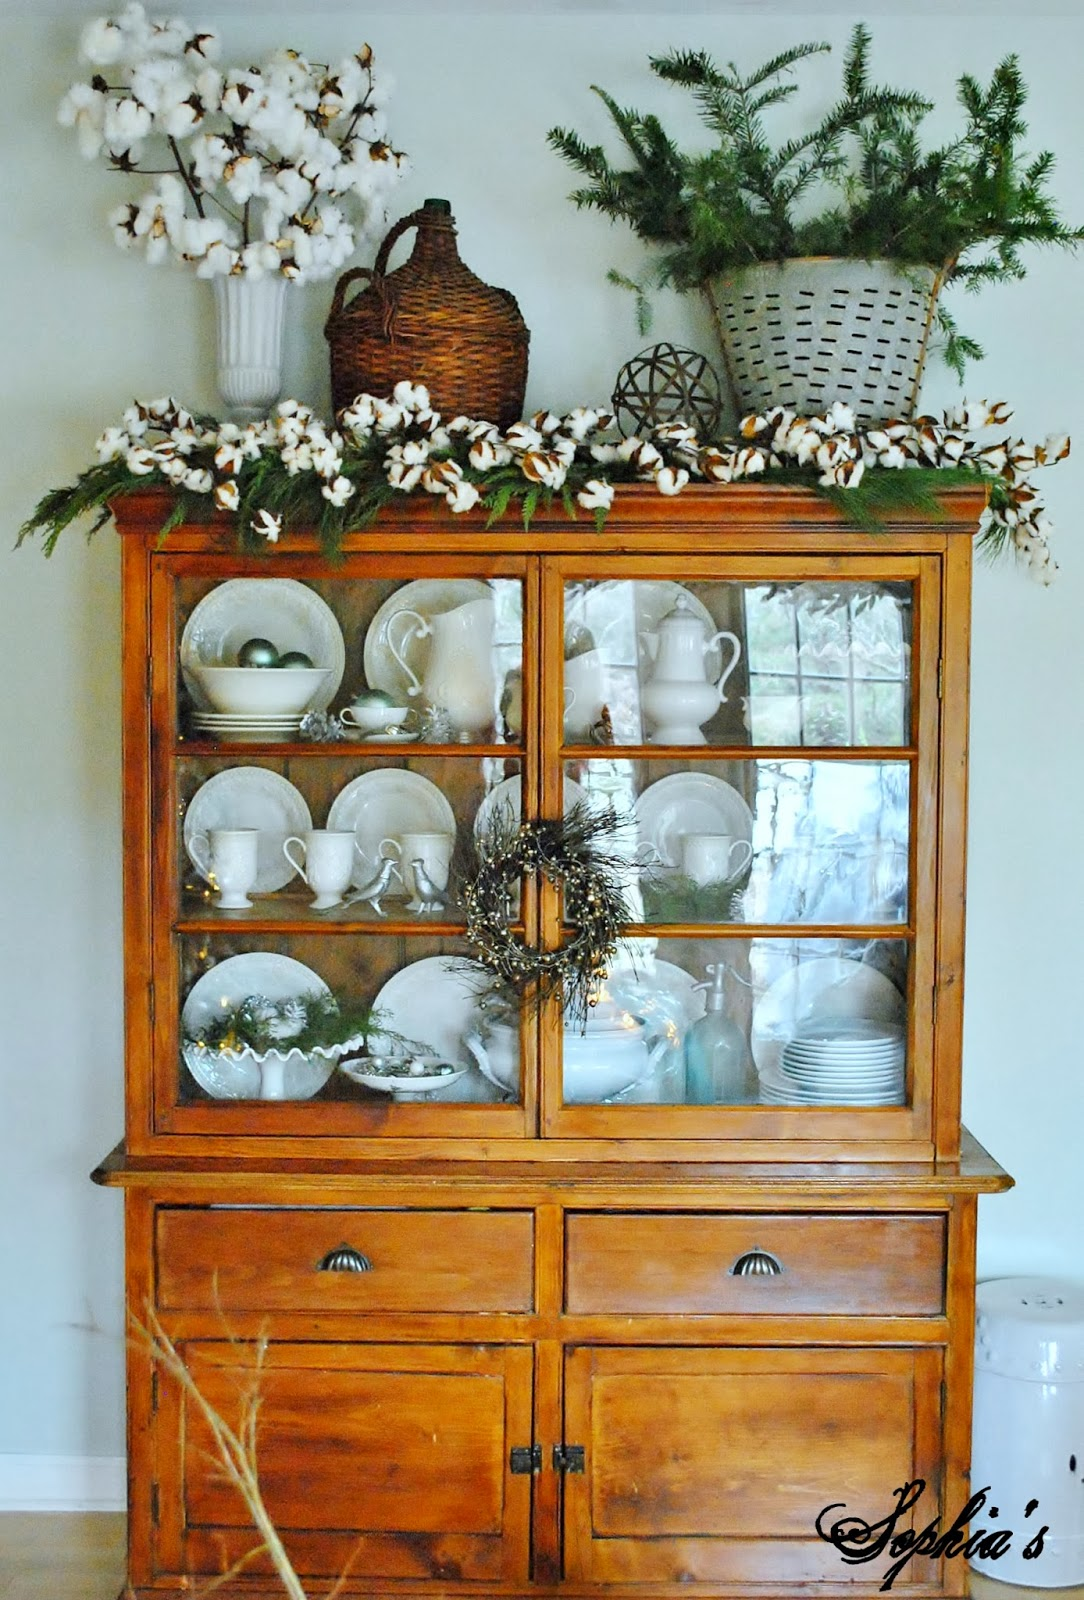 Decorating Ideas > Inspirations By D Decorating With Cotton Stems ~ 012415_Christmas Decorating Ideas Hutch